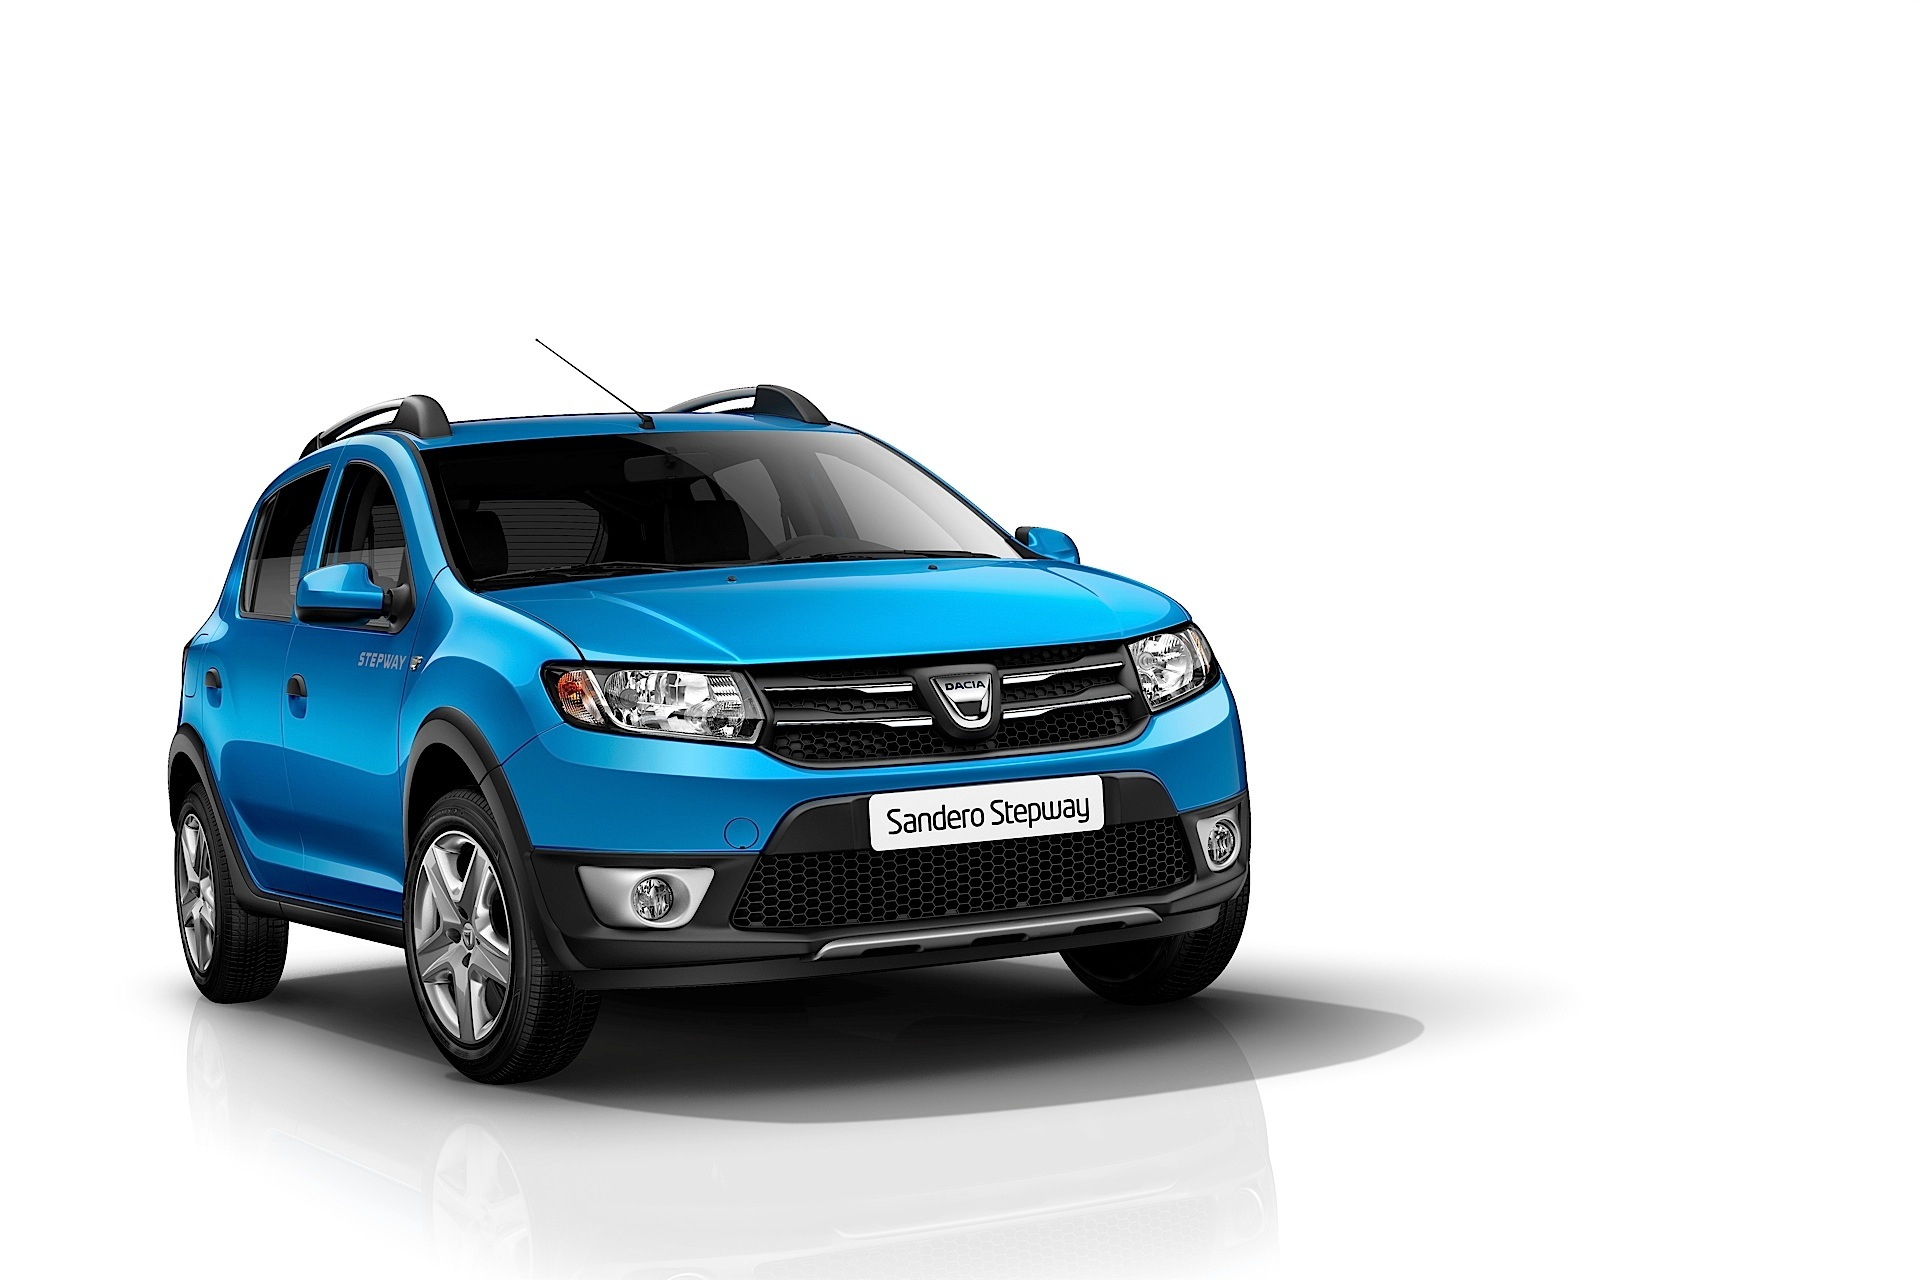 dacia sandero stepway 2 specs 2012 2013 2014 2015 2016 autoevolution. Black Bedroom Furniture Sets. Home Design Ideas